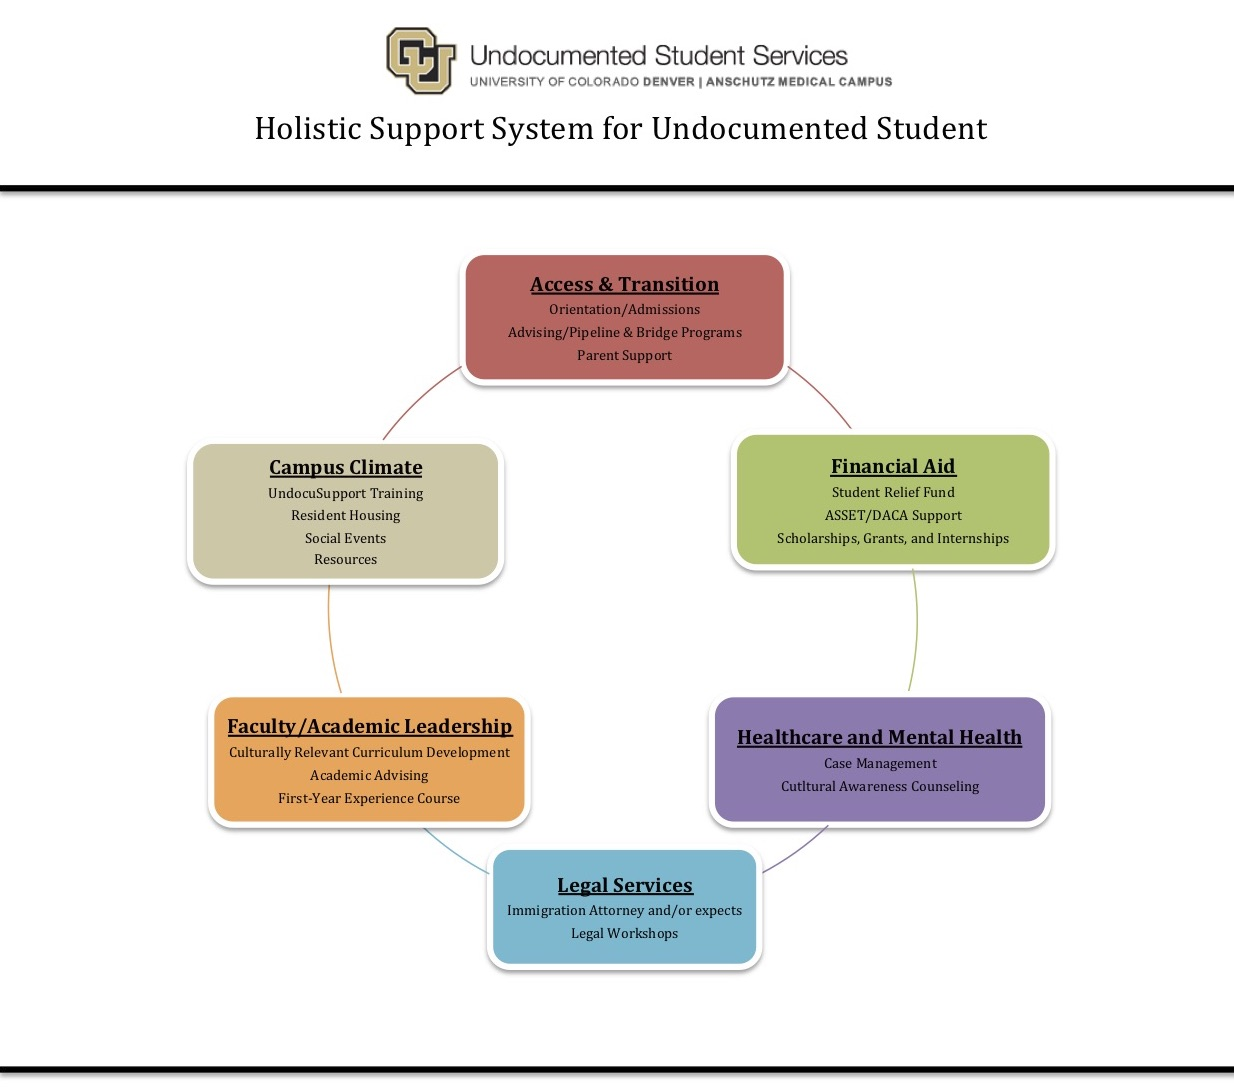 Graph of Holistic Support System for Undocumented Student. System includes Access & Transition, Financial Aid, Healthcare and Mental Health, Legal Services, Faculty/Academic Leadership, and Campus Climate